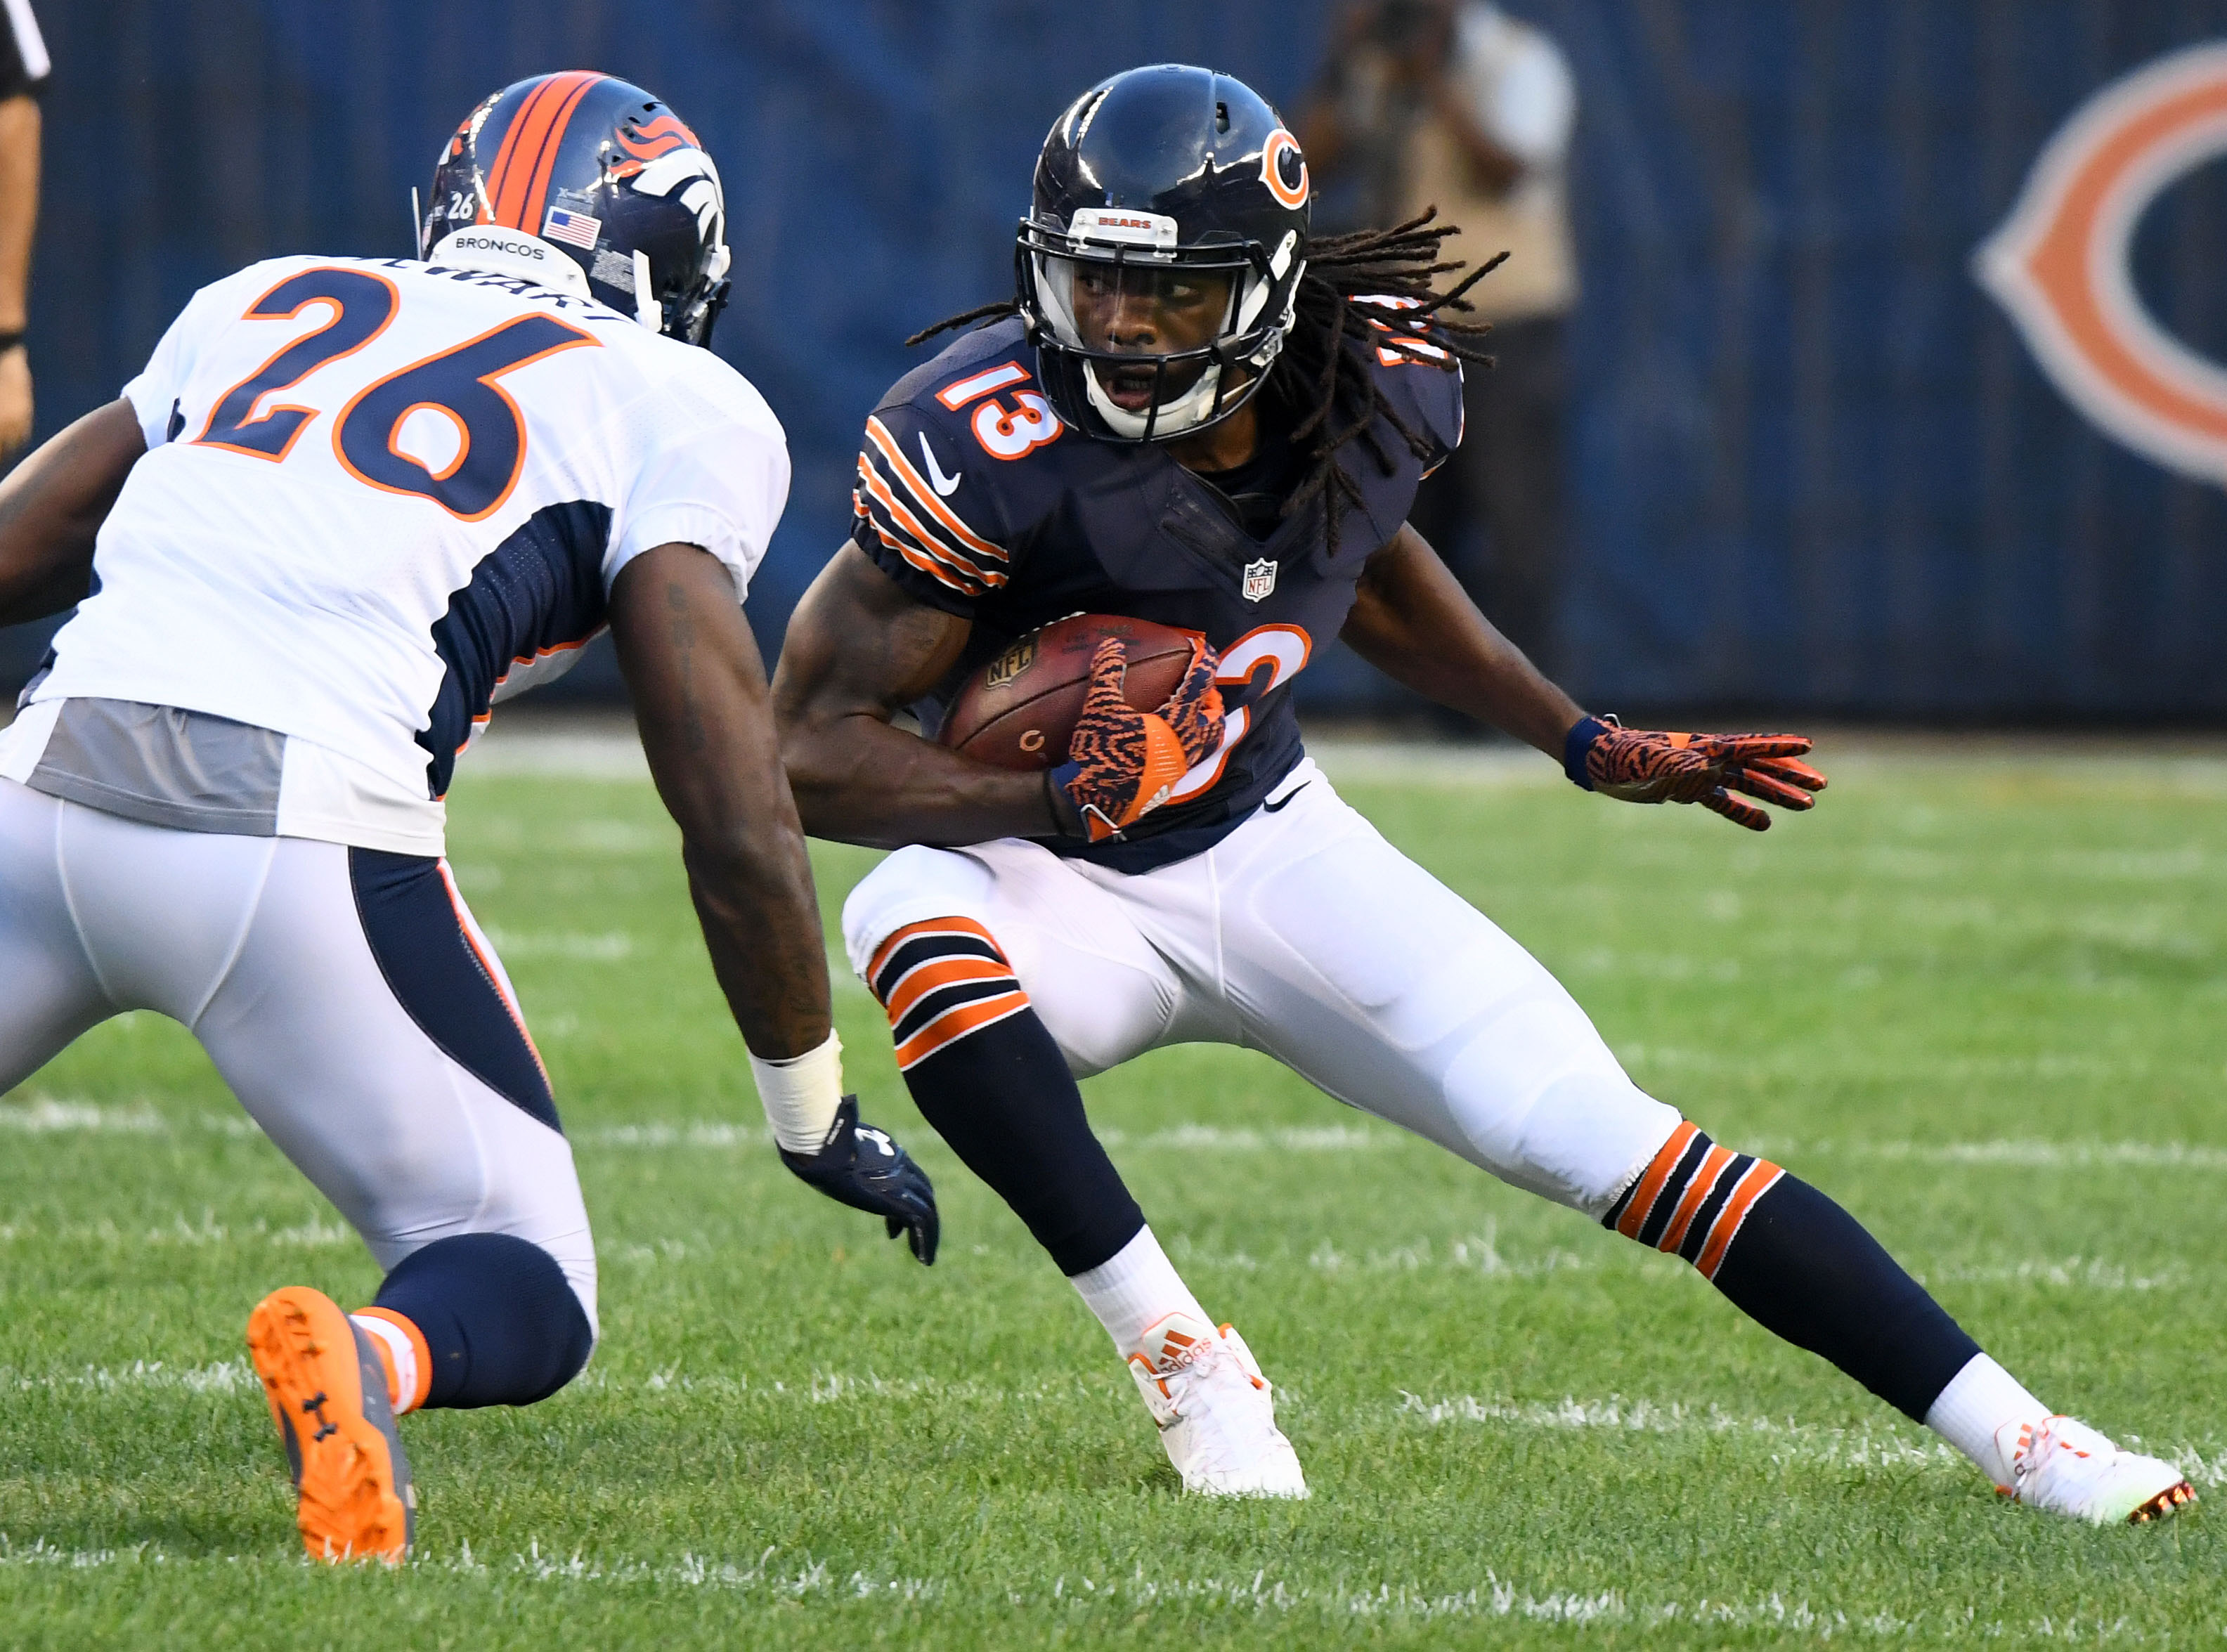 9449071-nfl-preseason-denver-broncos-at-chicago-bears